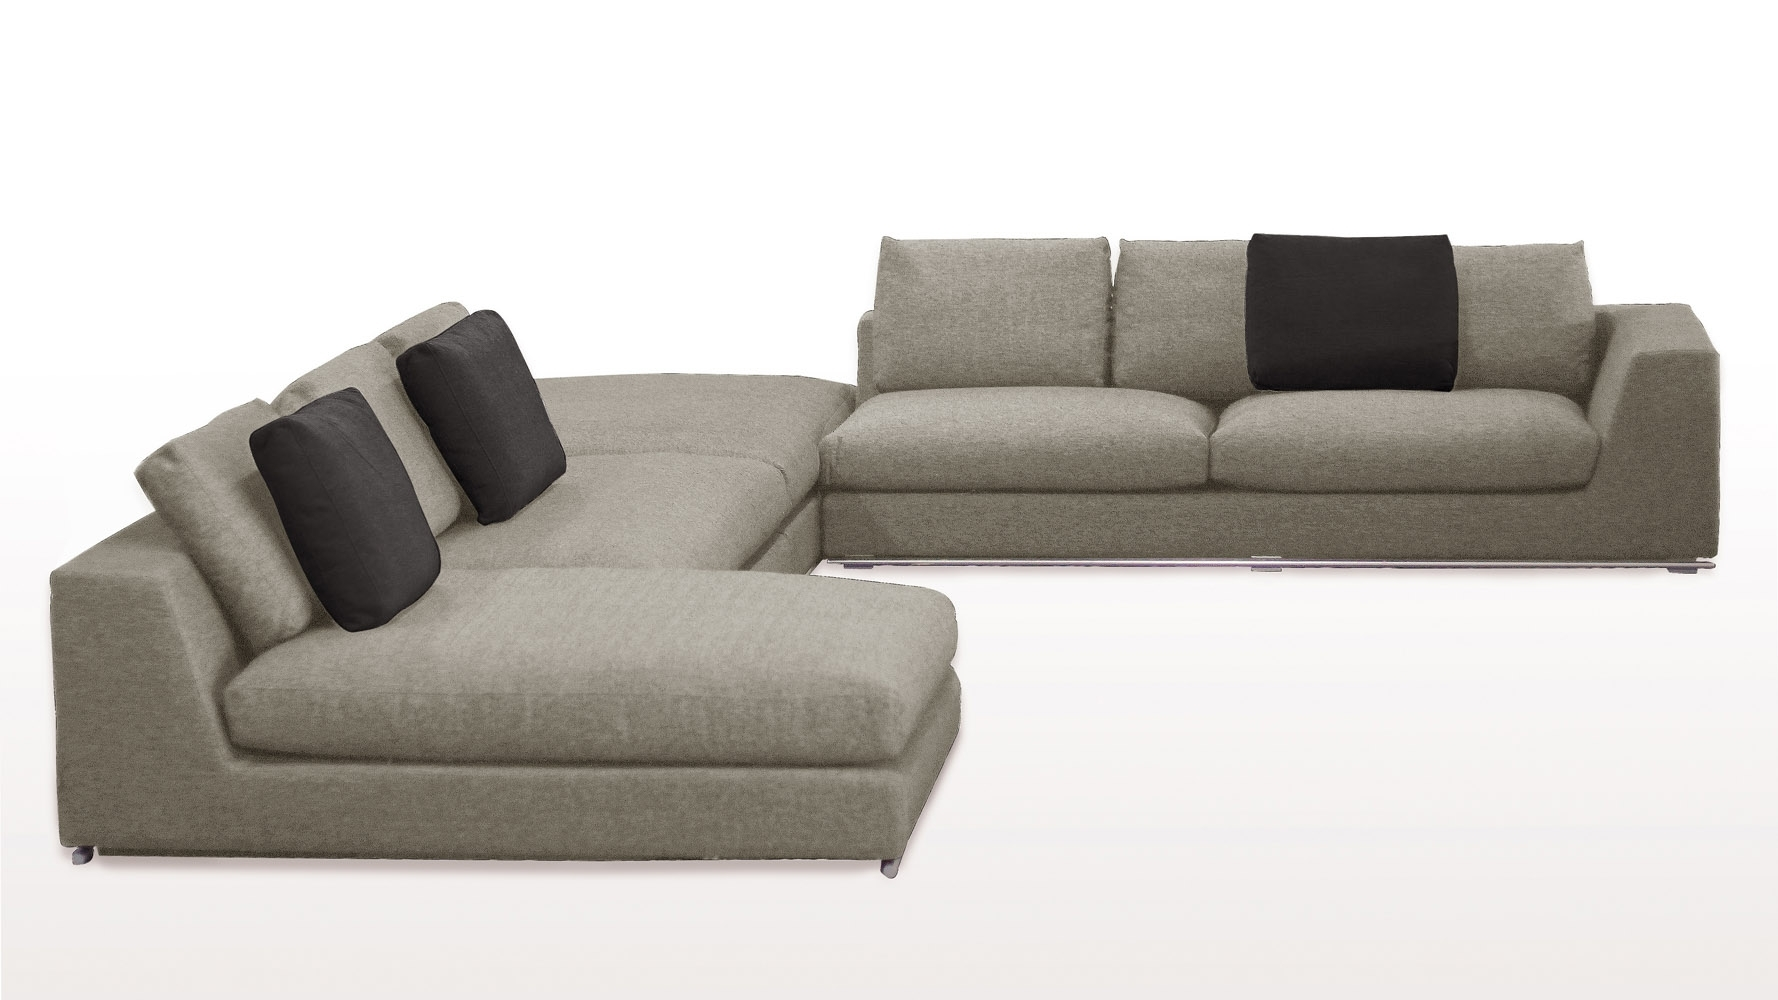 Trend Low Sectional Sofa 37 Living Room Sofa Ideas With Low In Low Sofas (Image 9 of 10)